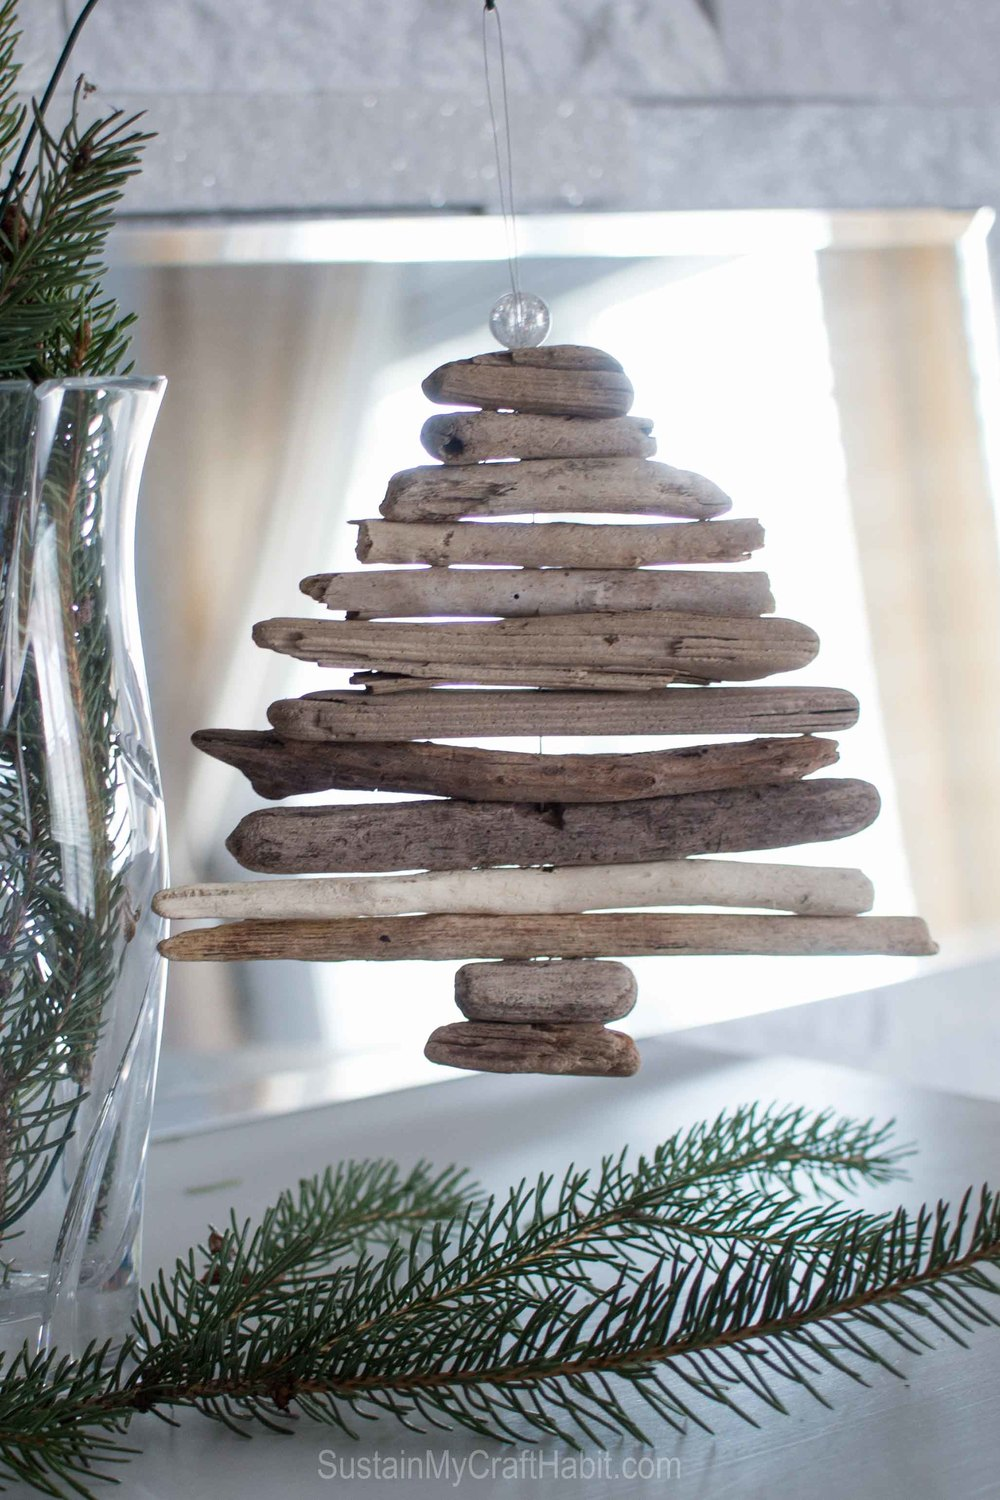 Miniature DIY driftwood Christmas tree ornament - SustainMyCraftHabit.com